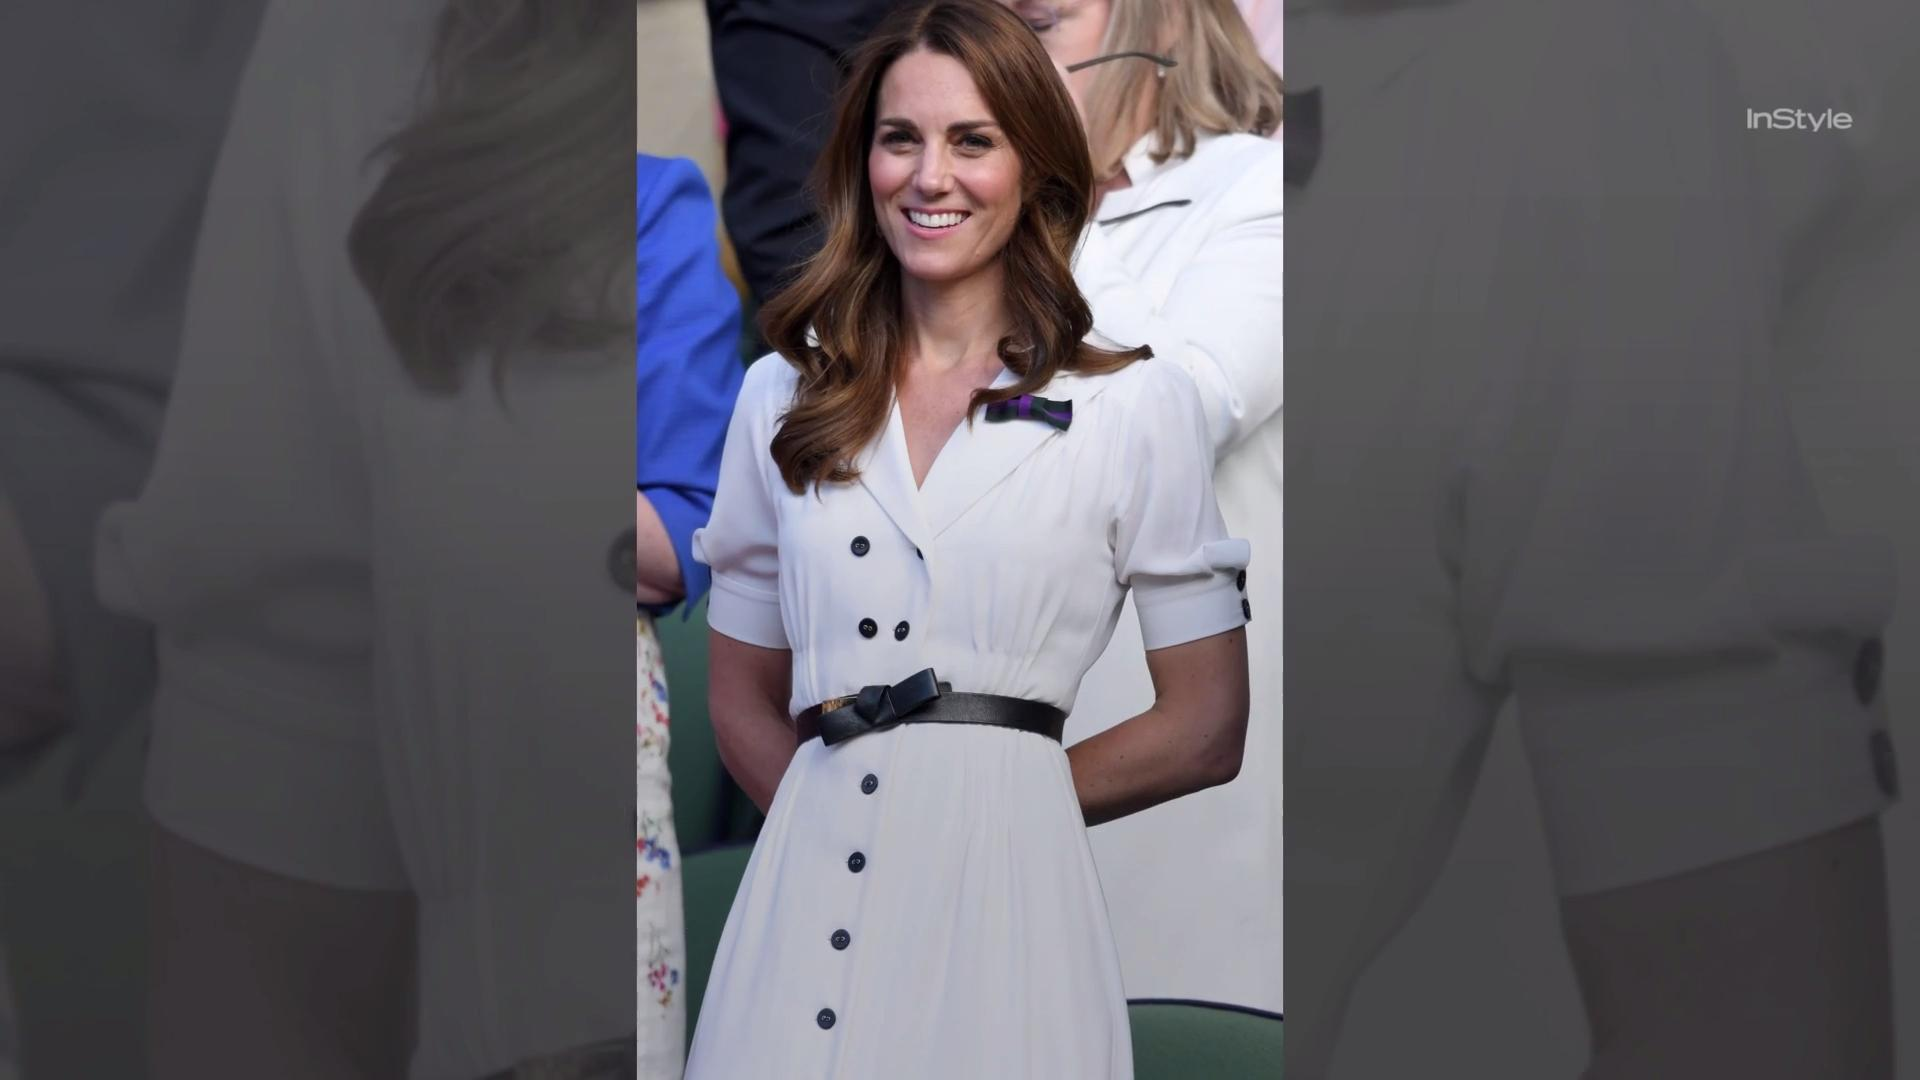 Kate Middleton and Prince William's Matching Outfits at Wimbledon Prove They're Totally in Love